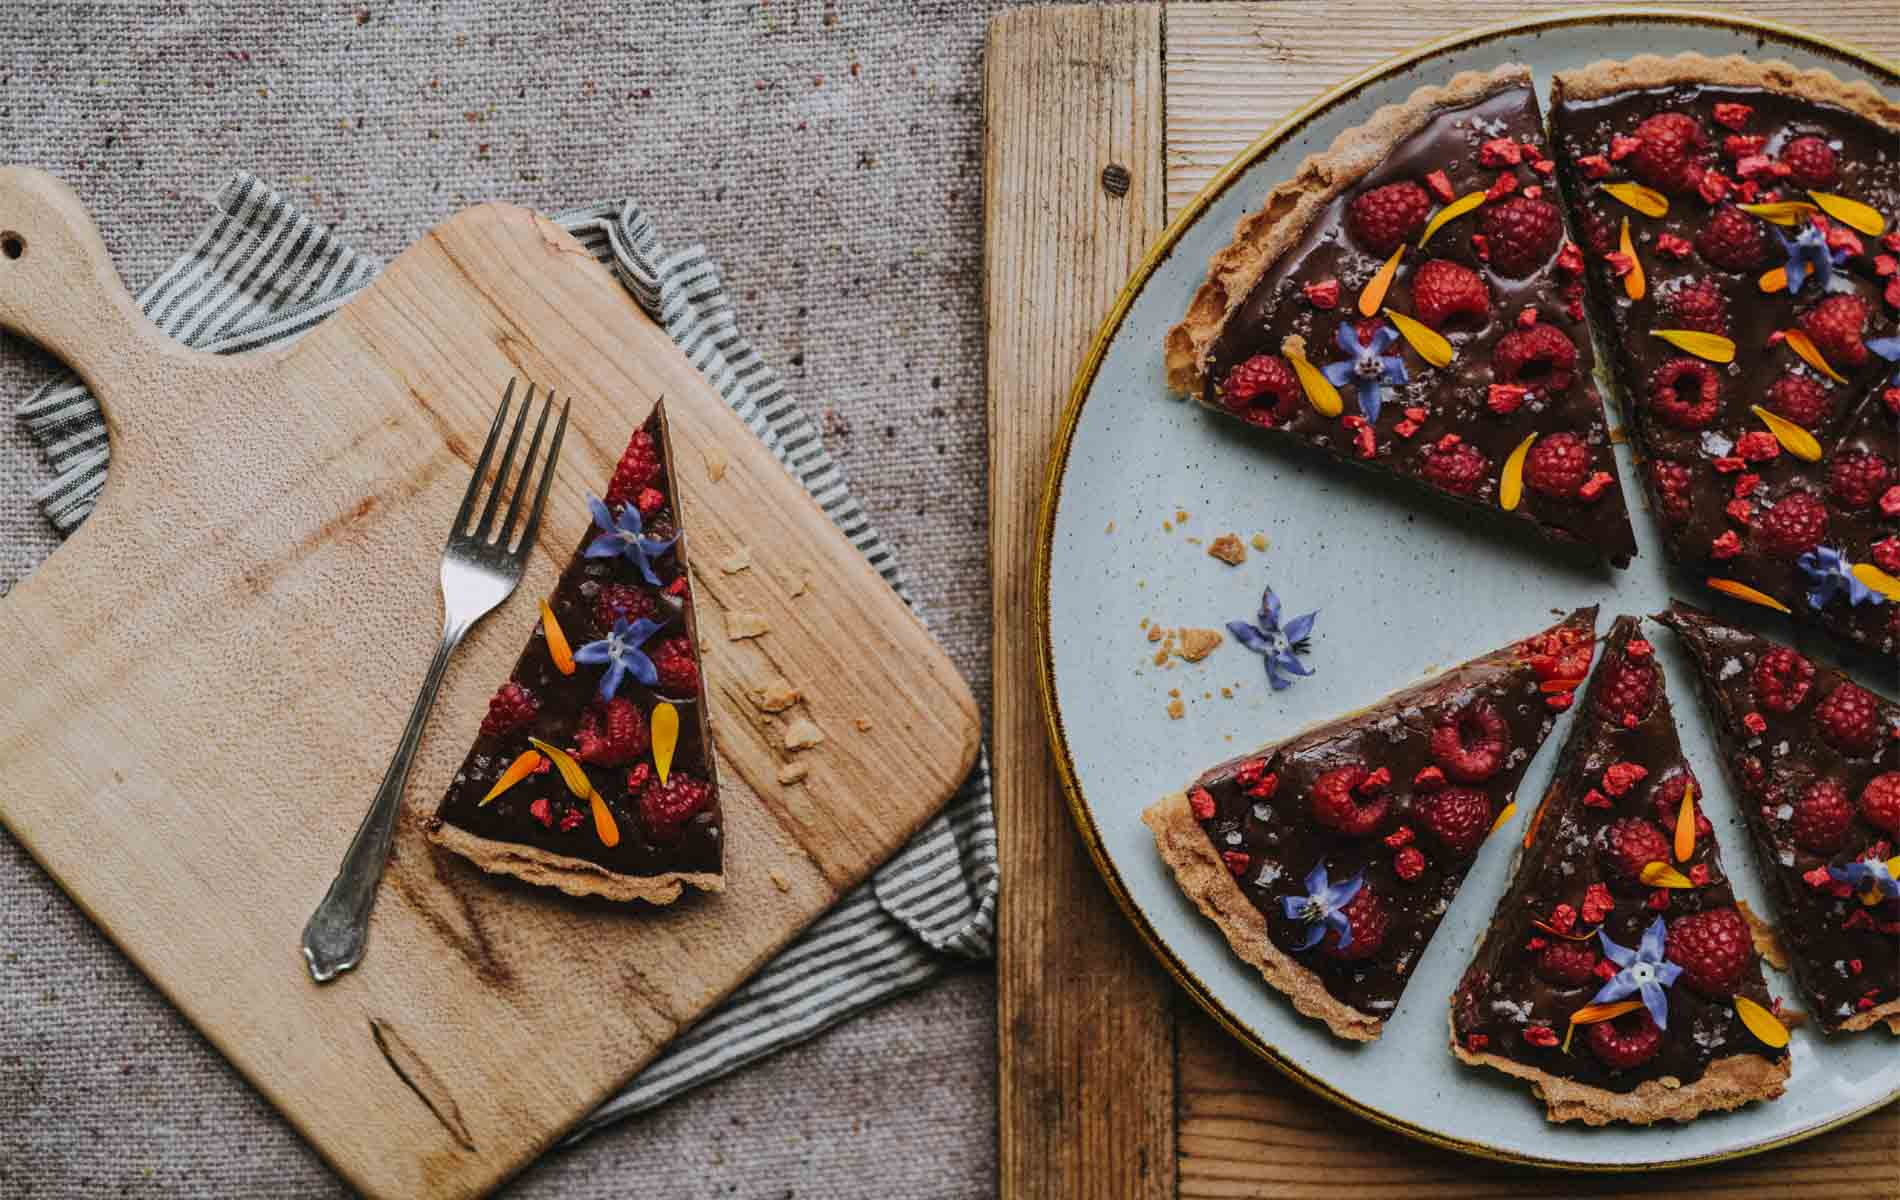 Pickle Shack Floral Chocolate And Rasberry Tart